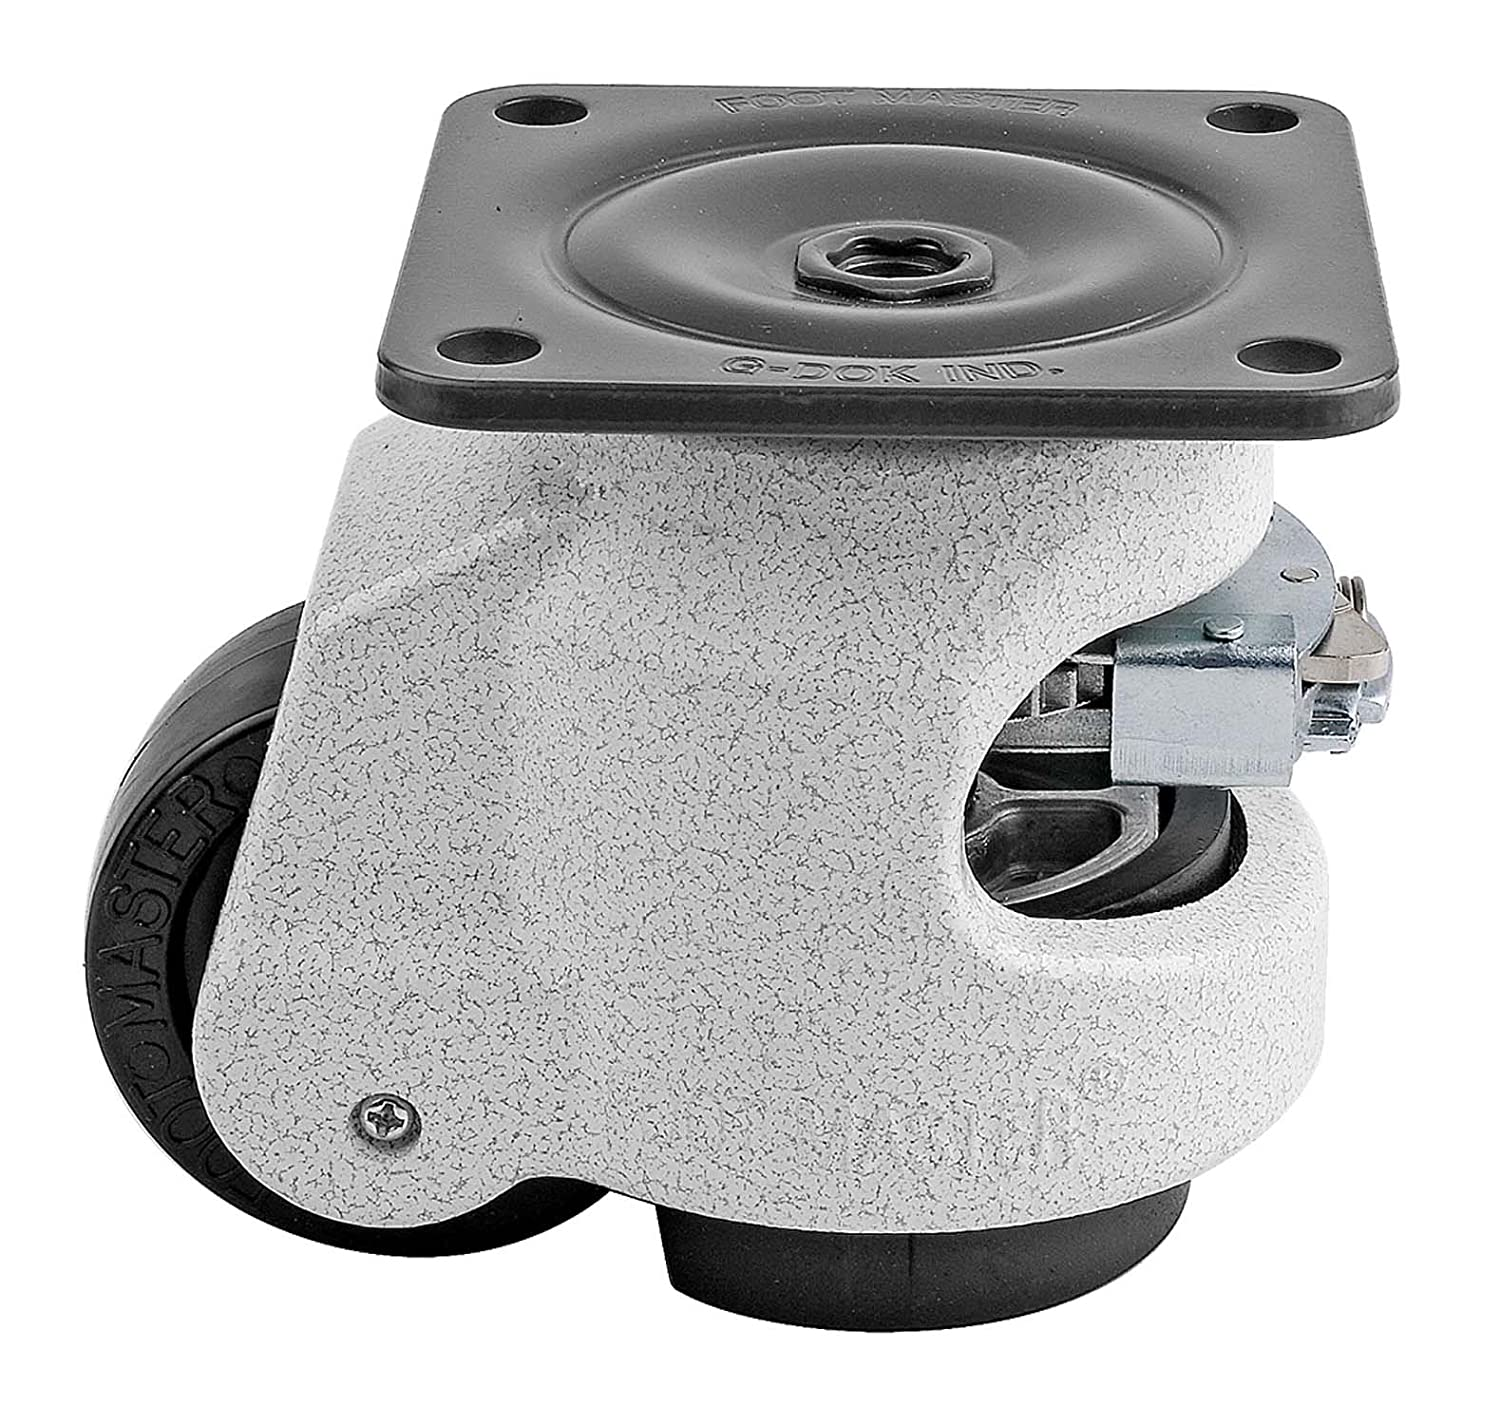 FOOTMASTER GDR-80F Nylon Wheel and NBR Pad Ratcheting Leveling Caster, 1100 lbs, Top Plate 3 17/32 x 3 17/32, Bolt Holes 2 3/4 x 2 3/4, Ivory by FOOTMASTER B00I2JHAR2